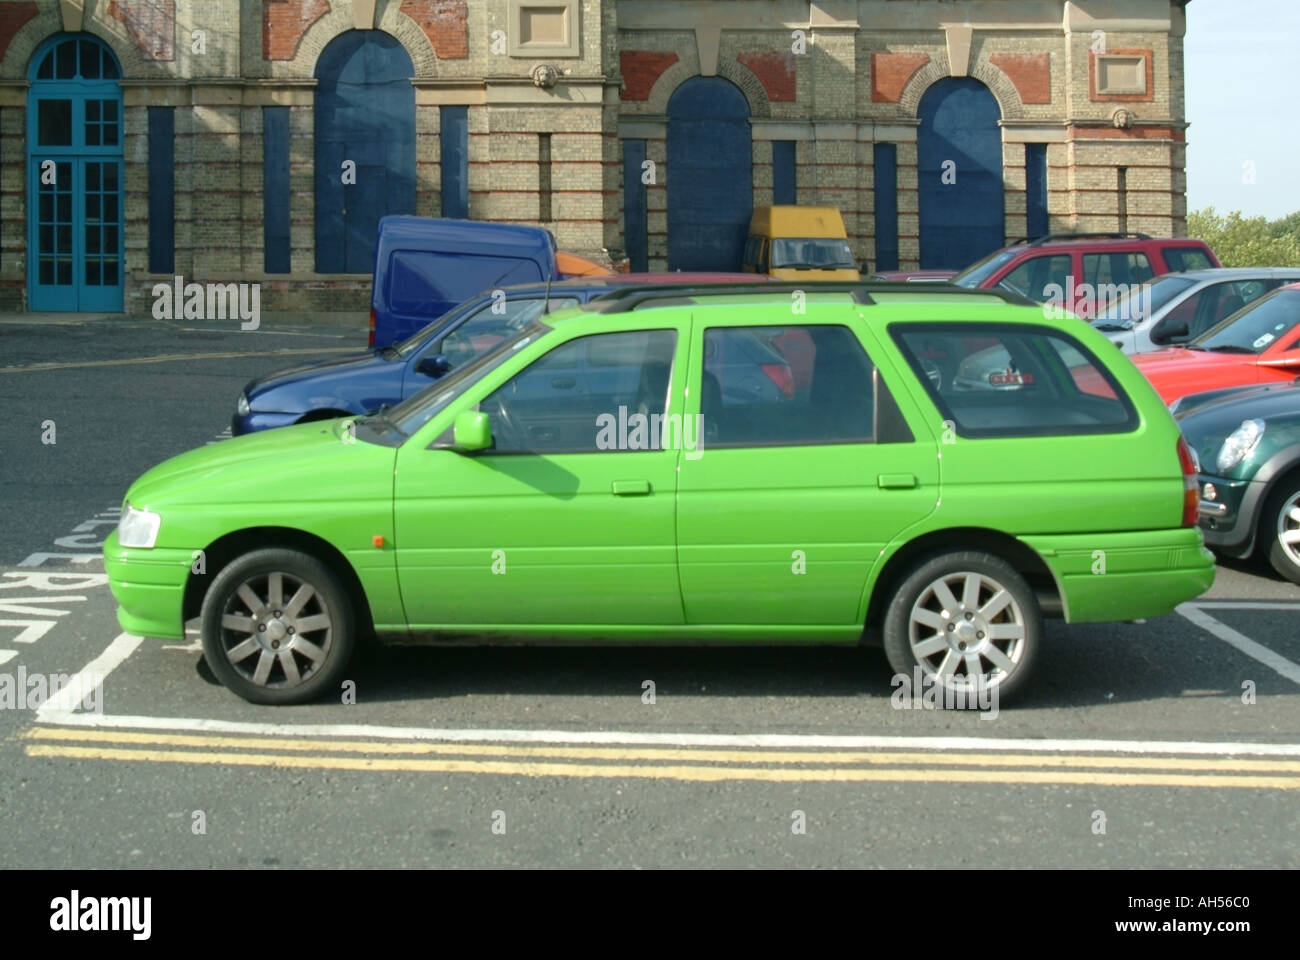 Colour Of Car Choice - North london bright green car in car park superstitions supposedly surround this choice of colour also